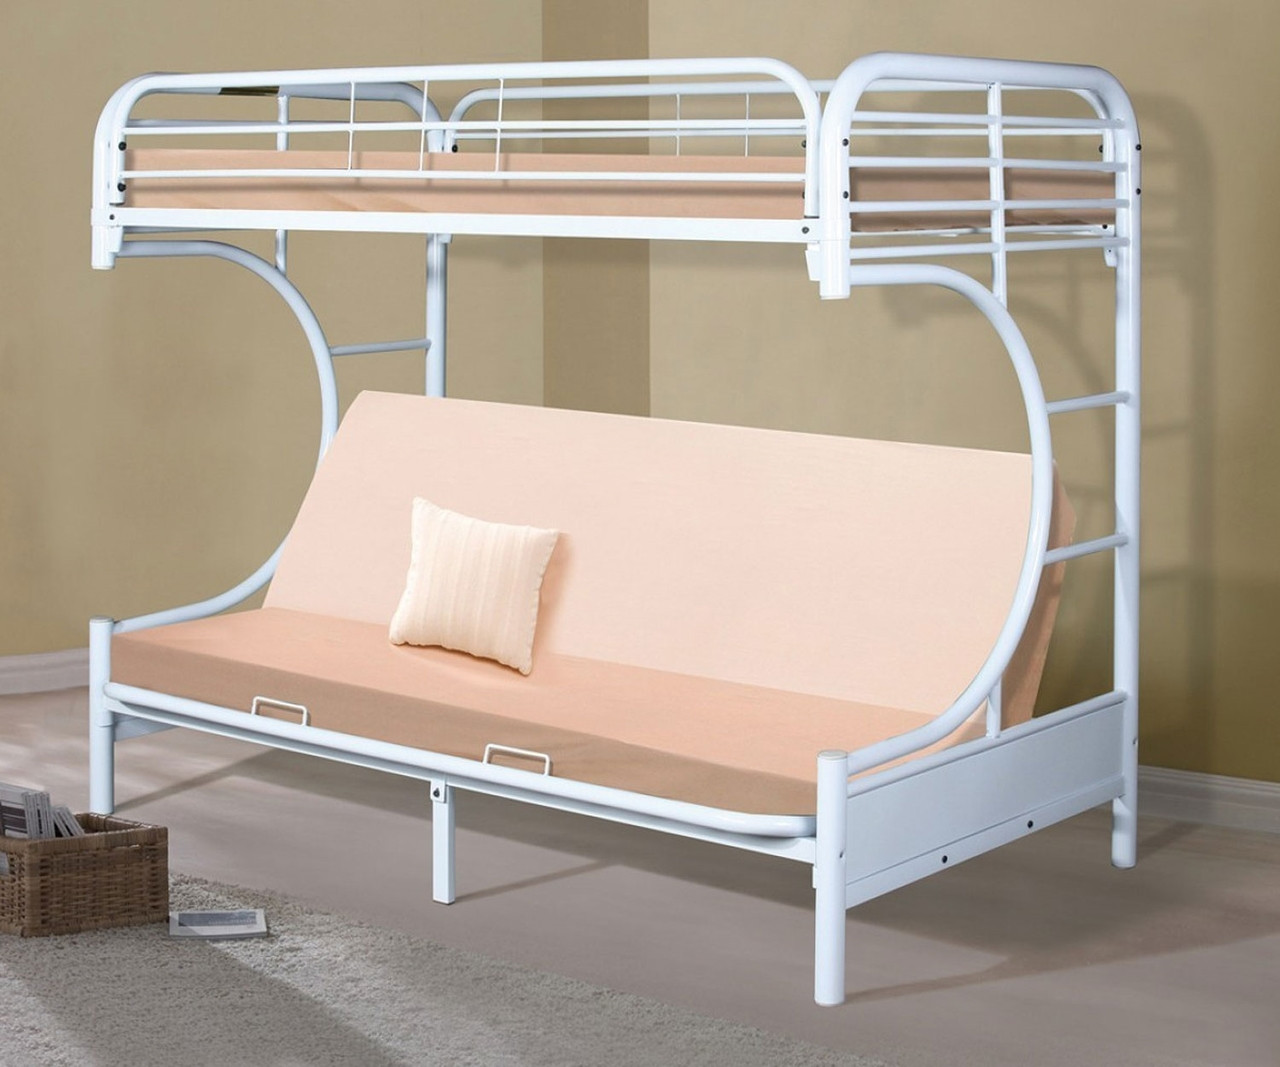 new styles bfb0e 851ac Donco C-Shaped Futon Bunk Bed White